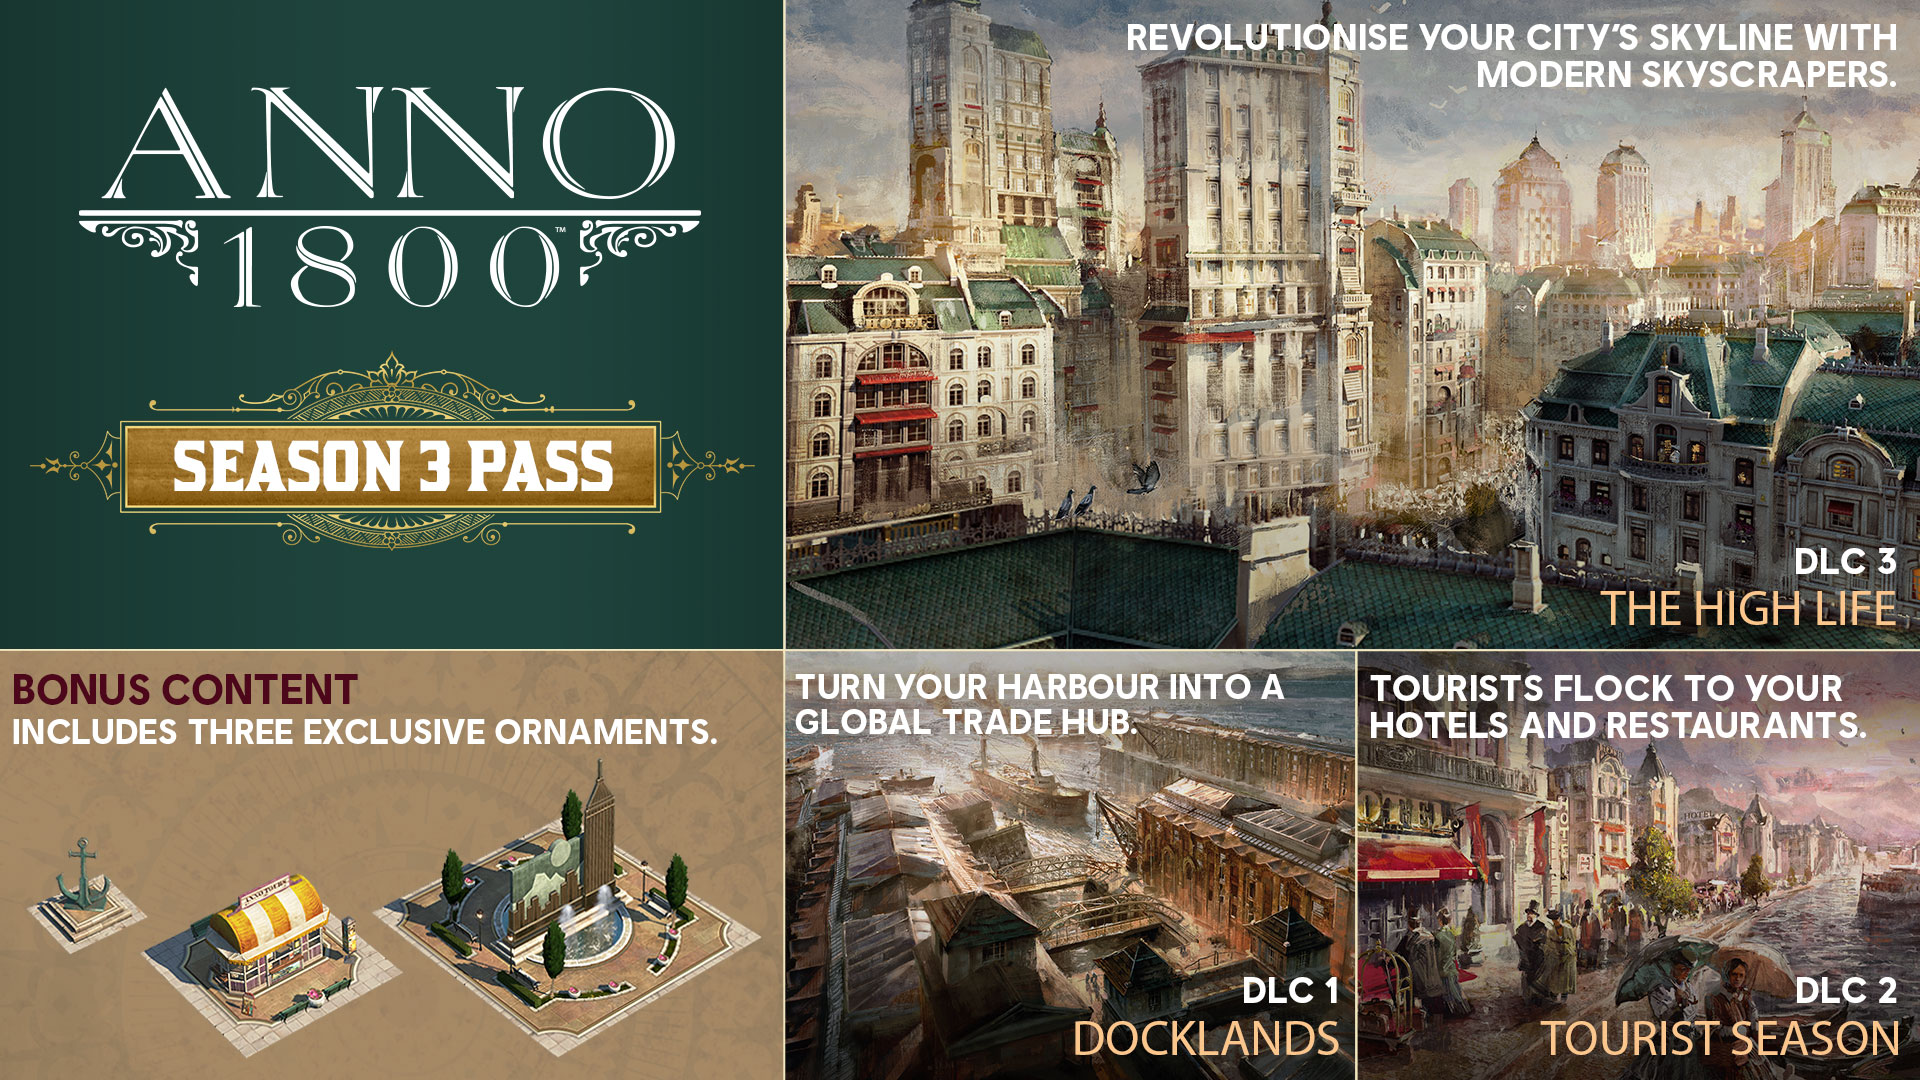 Anno 1800 Season 3 Pass